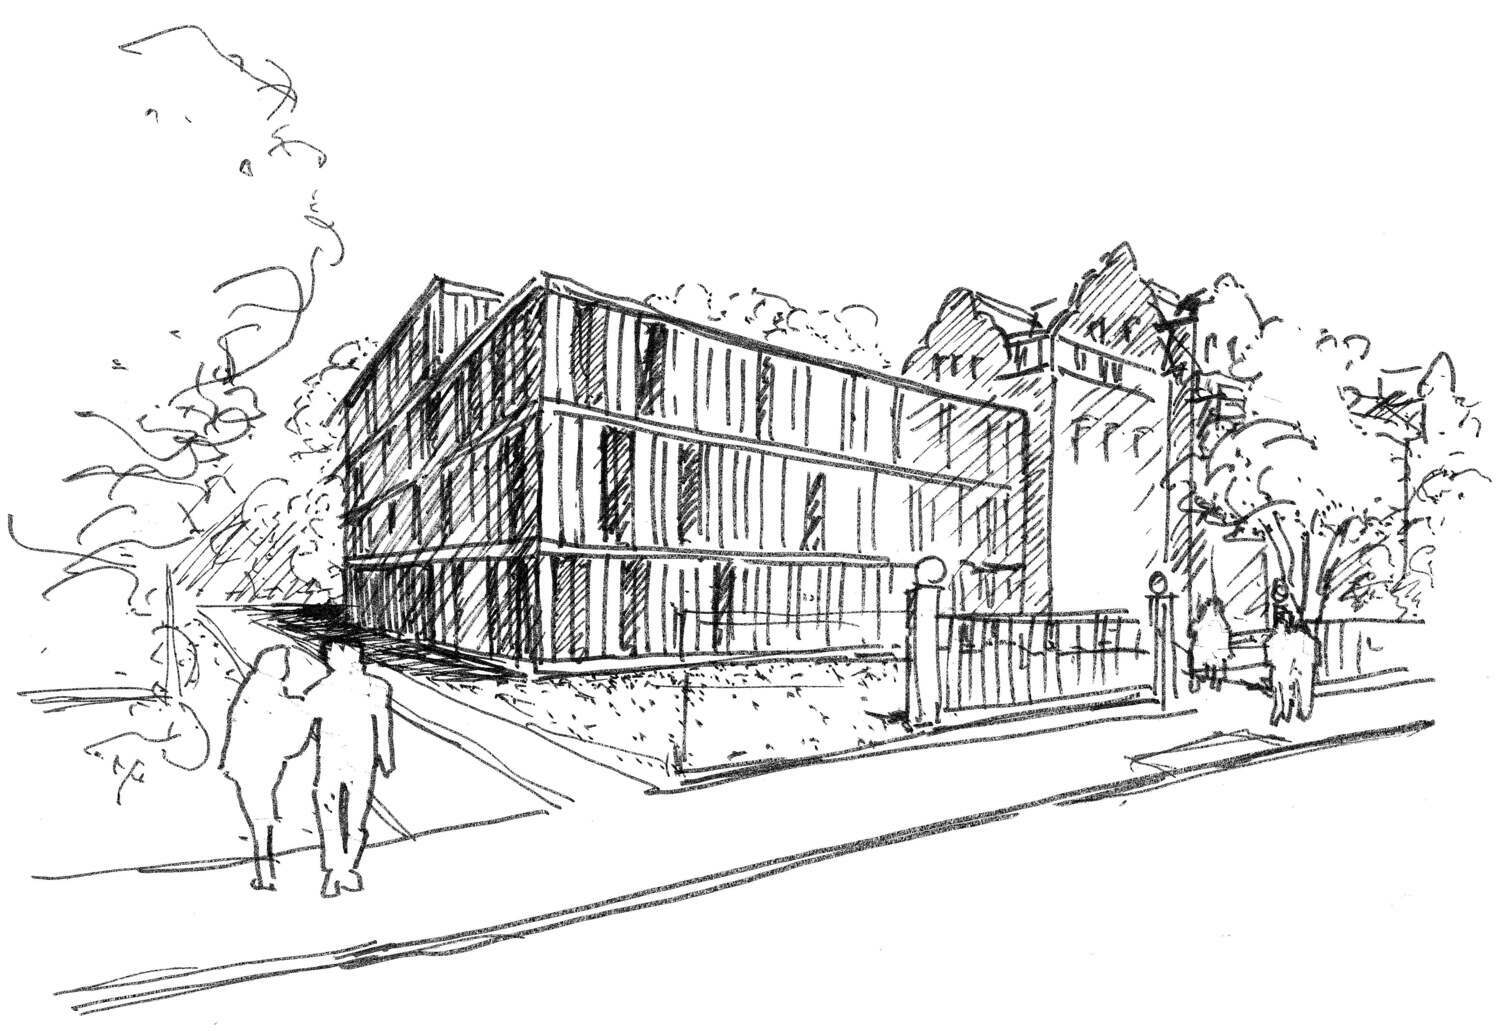 With a rating that was overall outstanding, the German Council of Science and Humanities has recommended that funding be given for the planned Human Cognition and Behavior (HuCaB) research building at Göttingen University. The new building will be around 3,500 square metres in total area and is to be built on the University's central campus between Goßlerstraße and Heinrich-Düker-Weg.